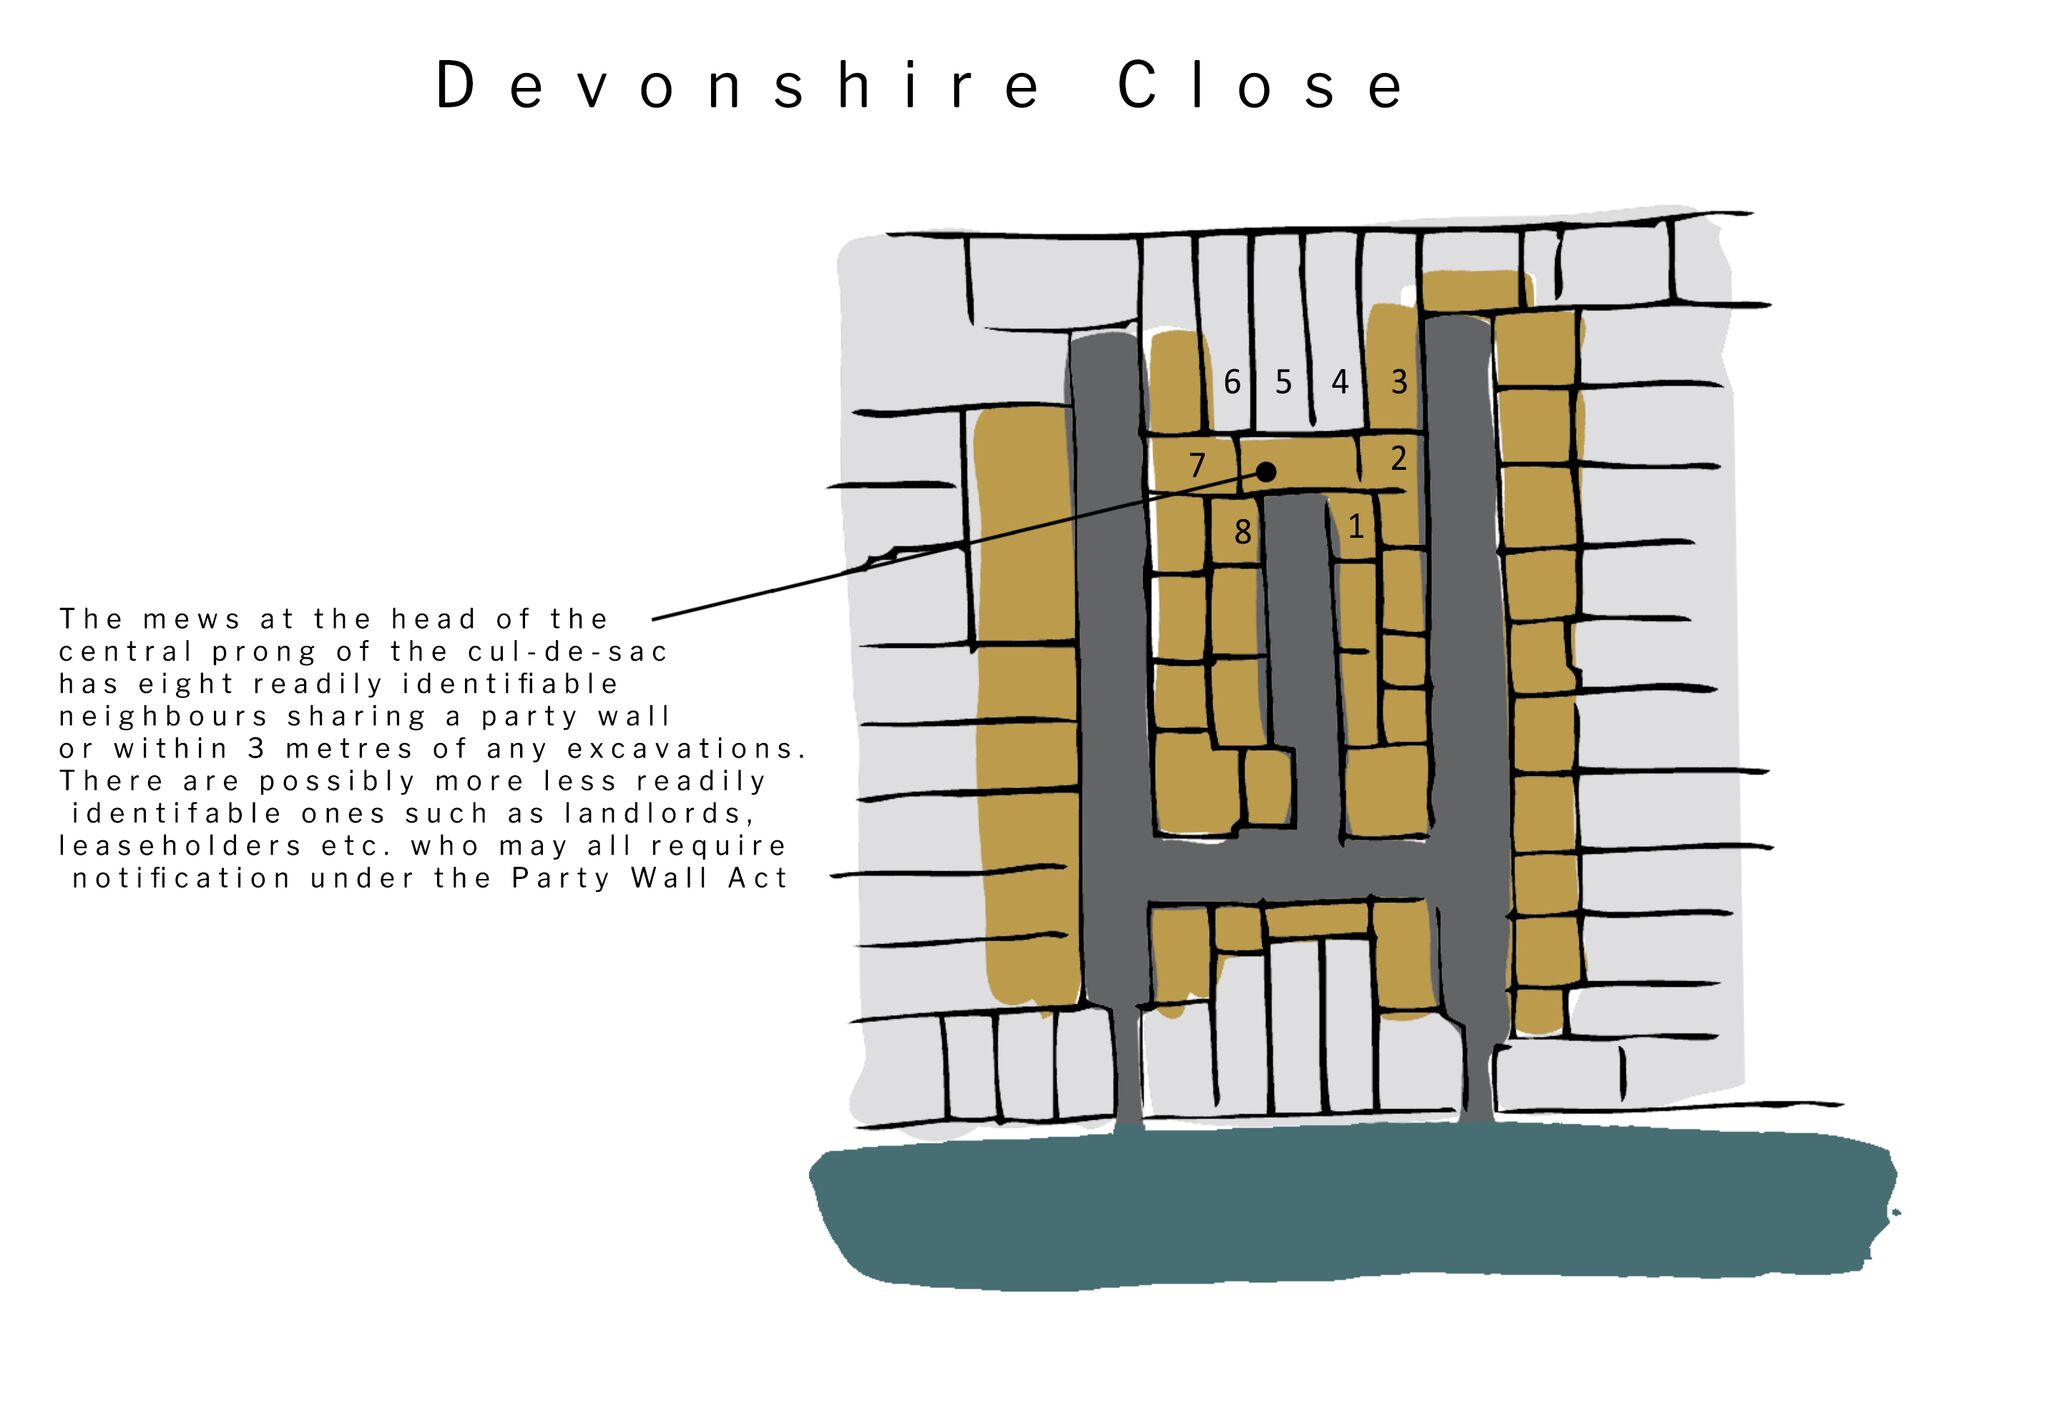 Fig 51A/1:Devonshire Close – Diagram showing Mews in close proximity of a development site